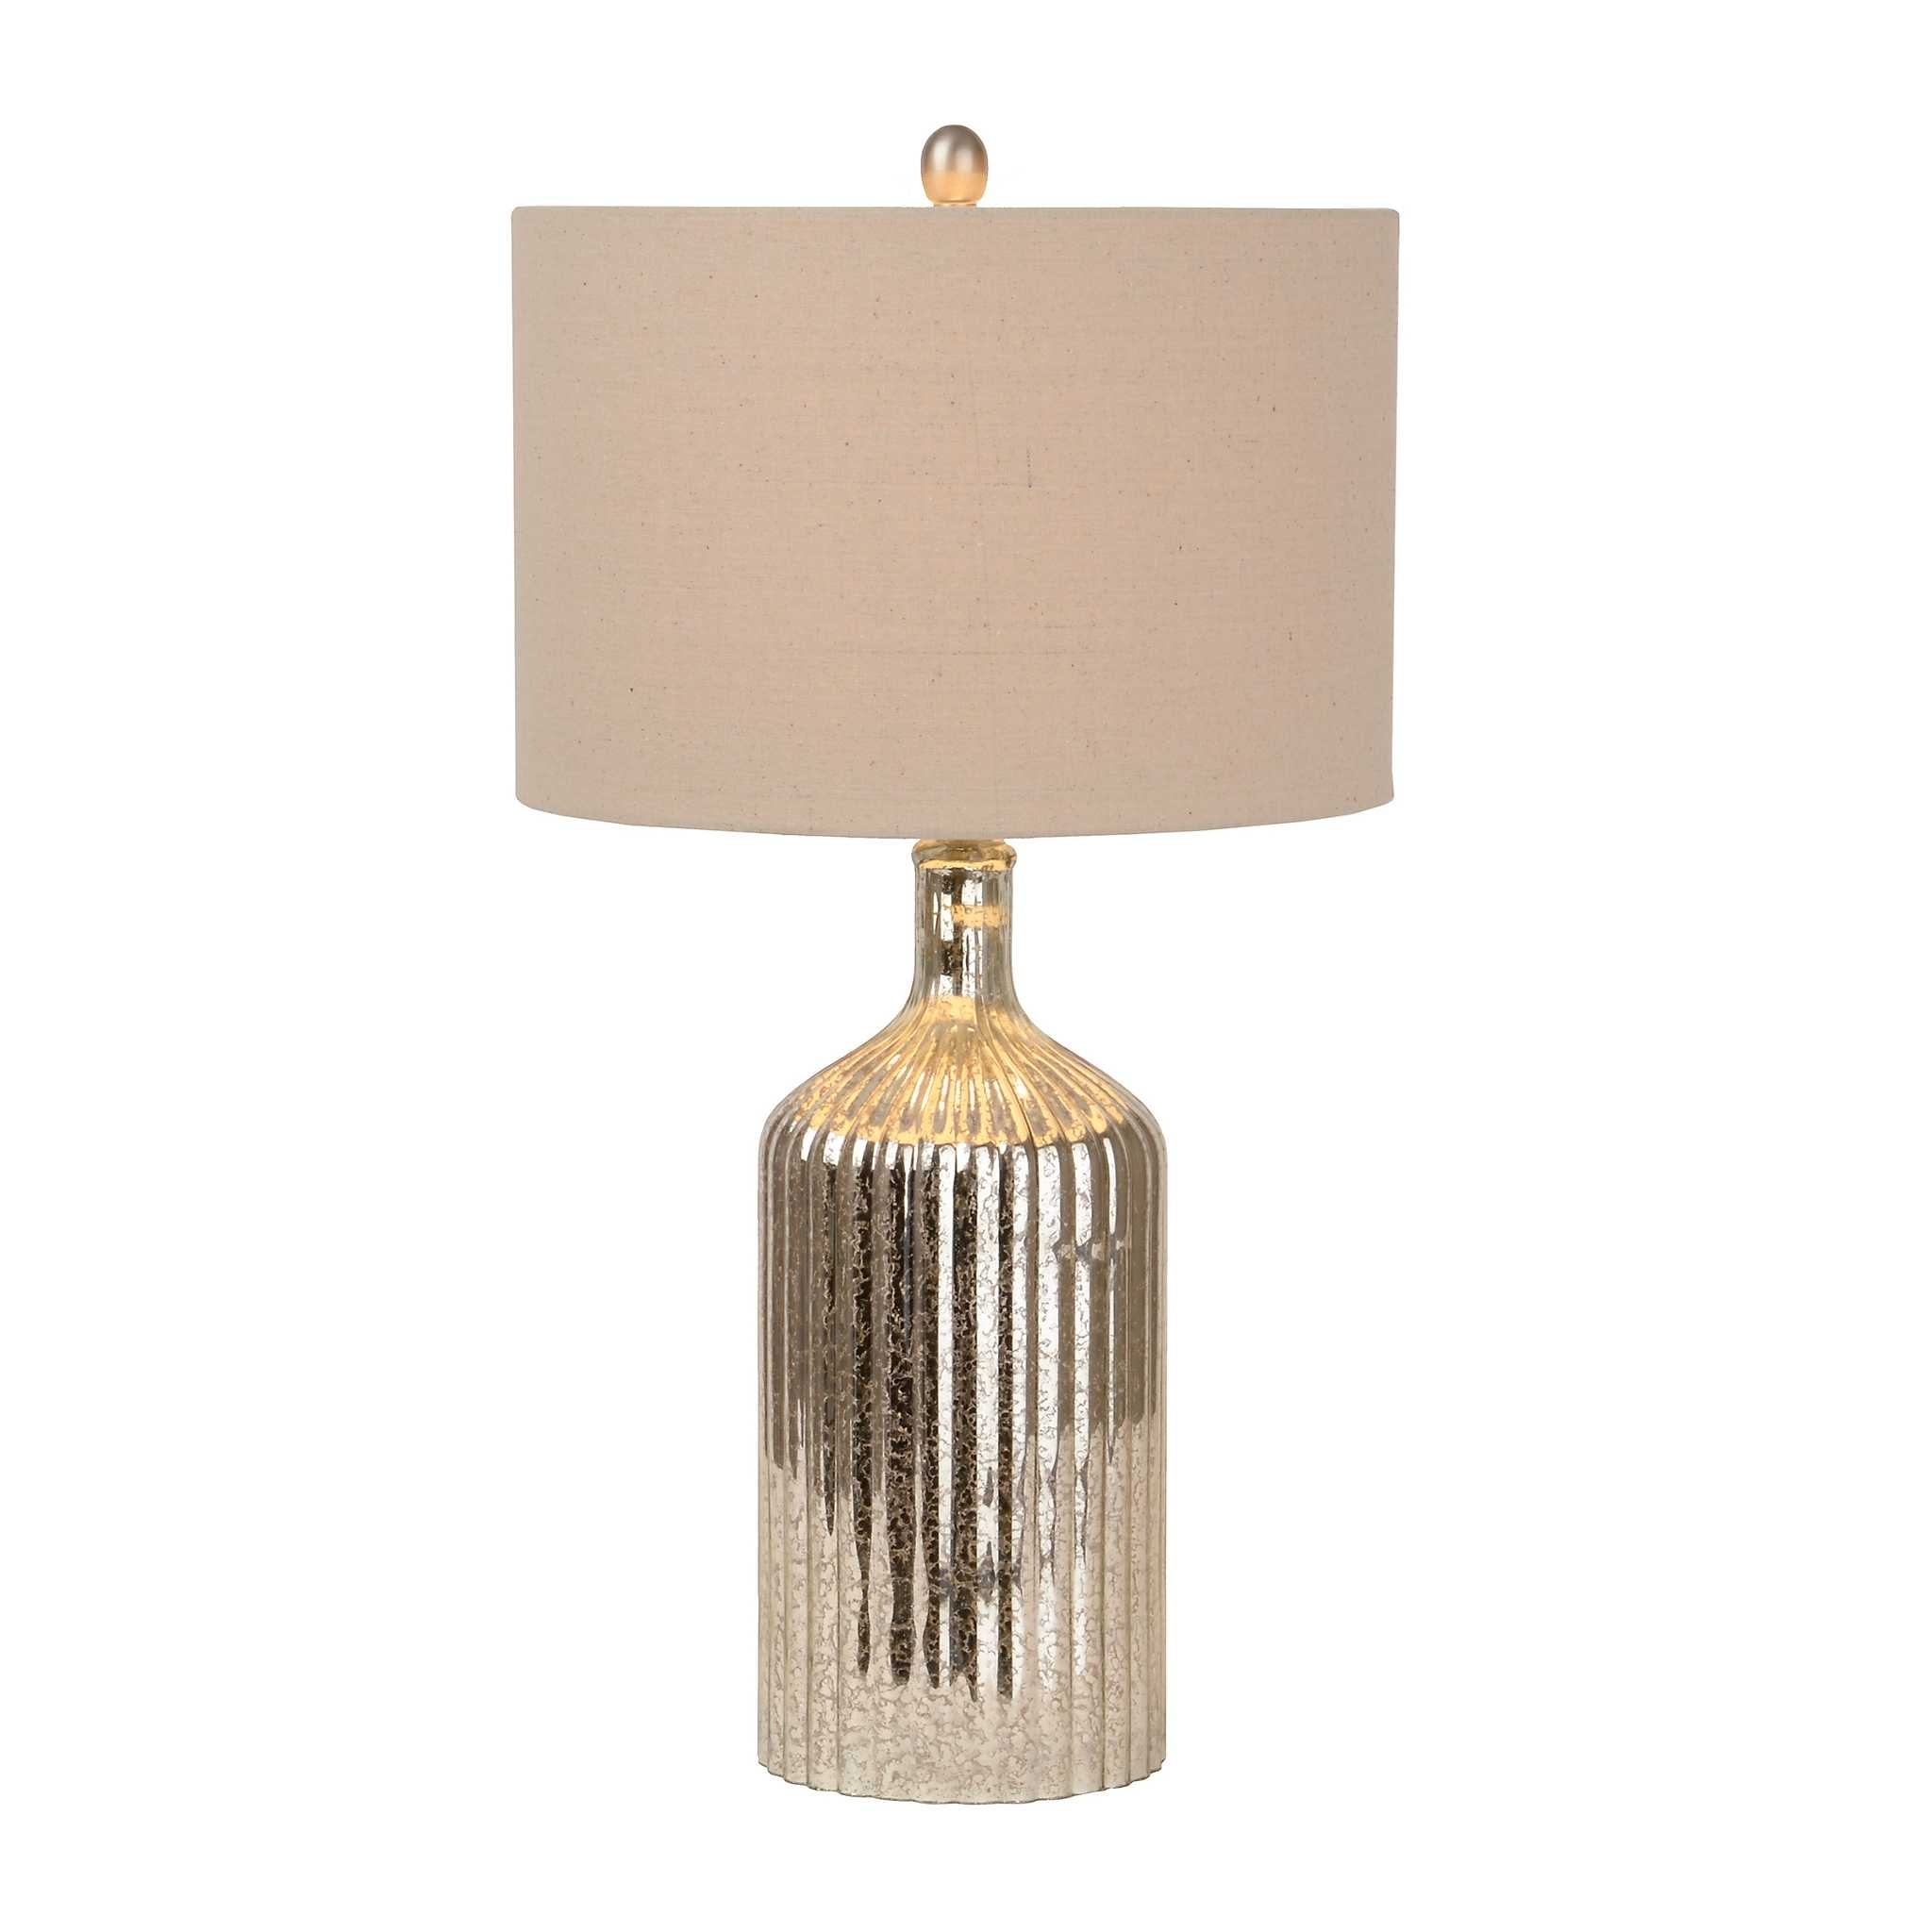 Image of: Glass Mercury Table Lamp Ideas On Foter